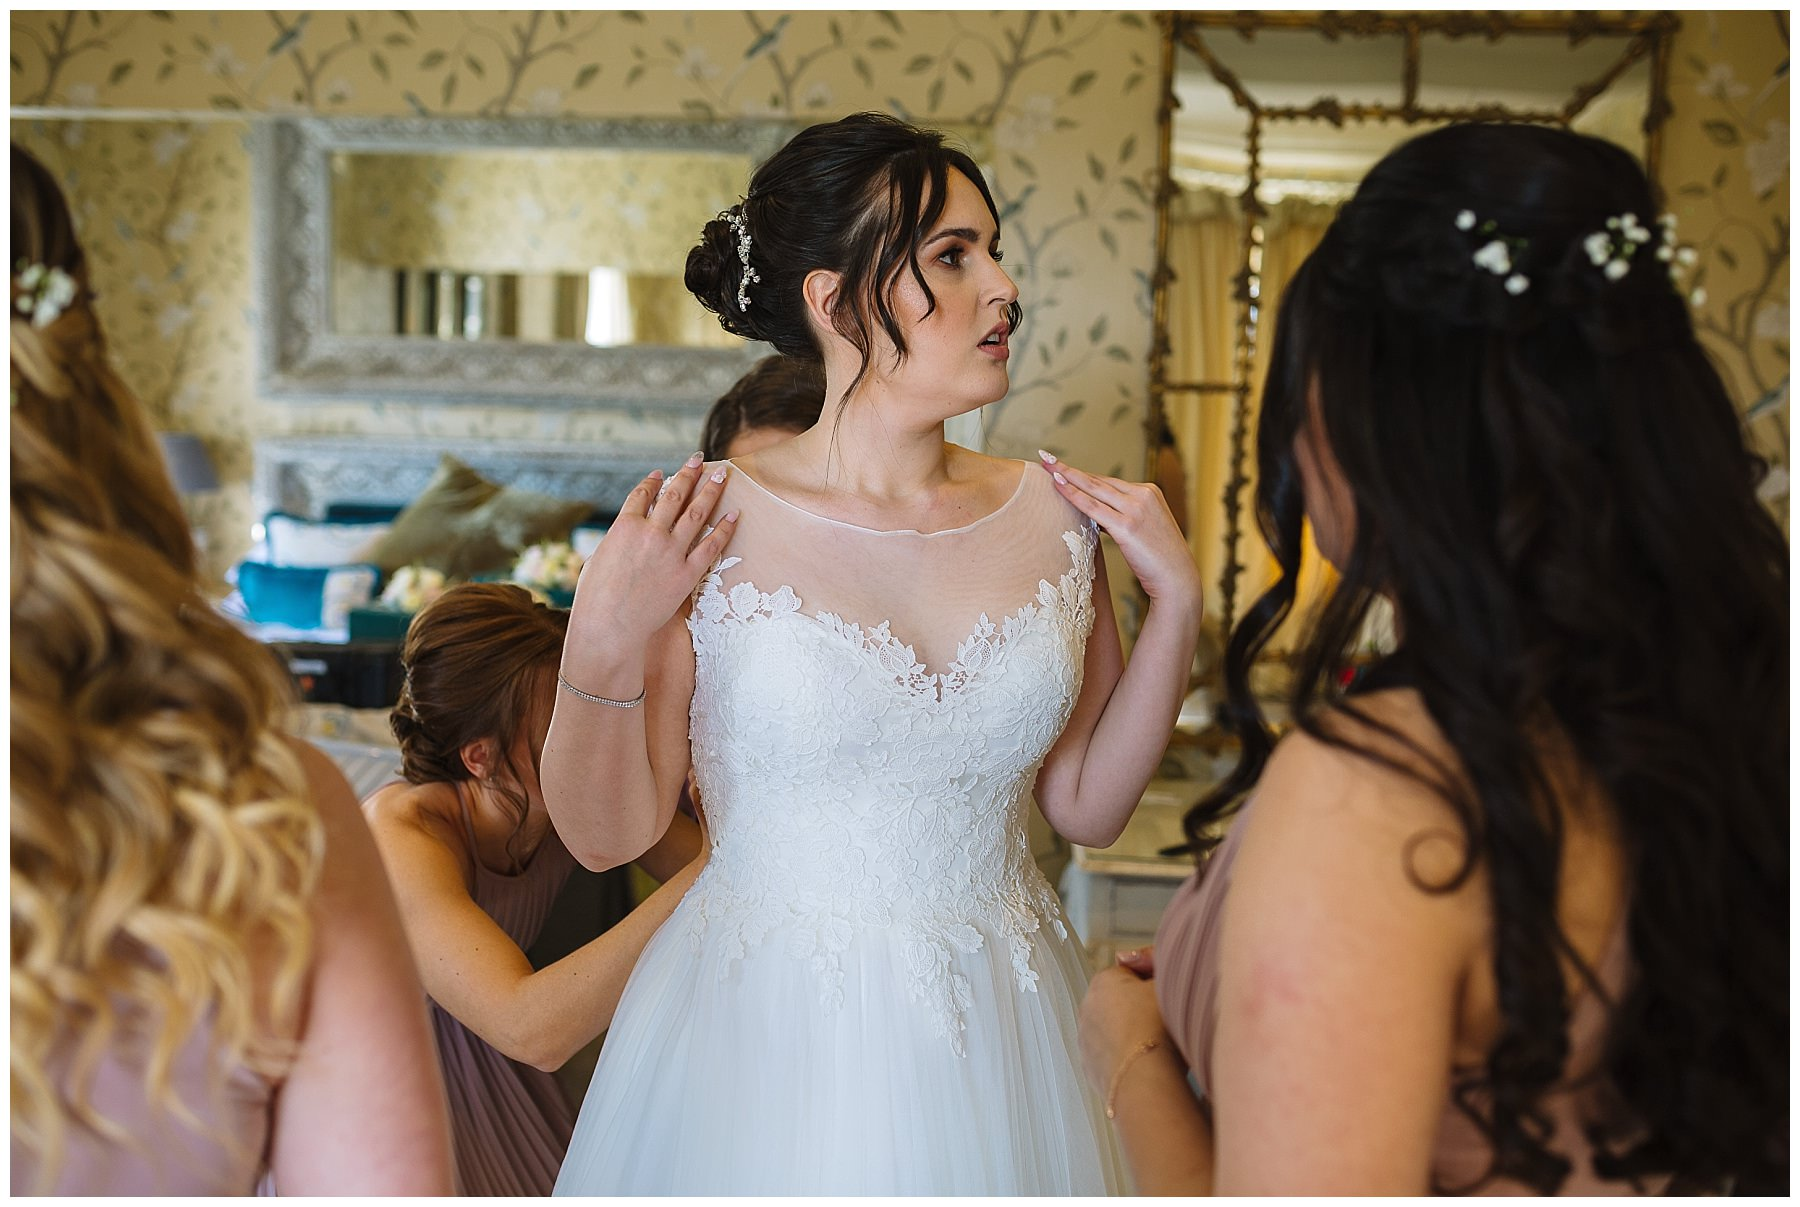 Bridesmaids help bride get into her dress